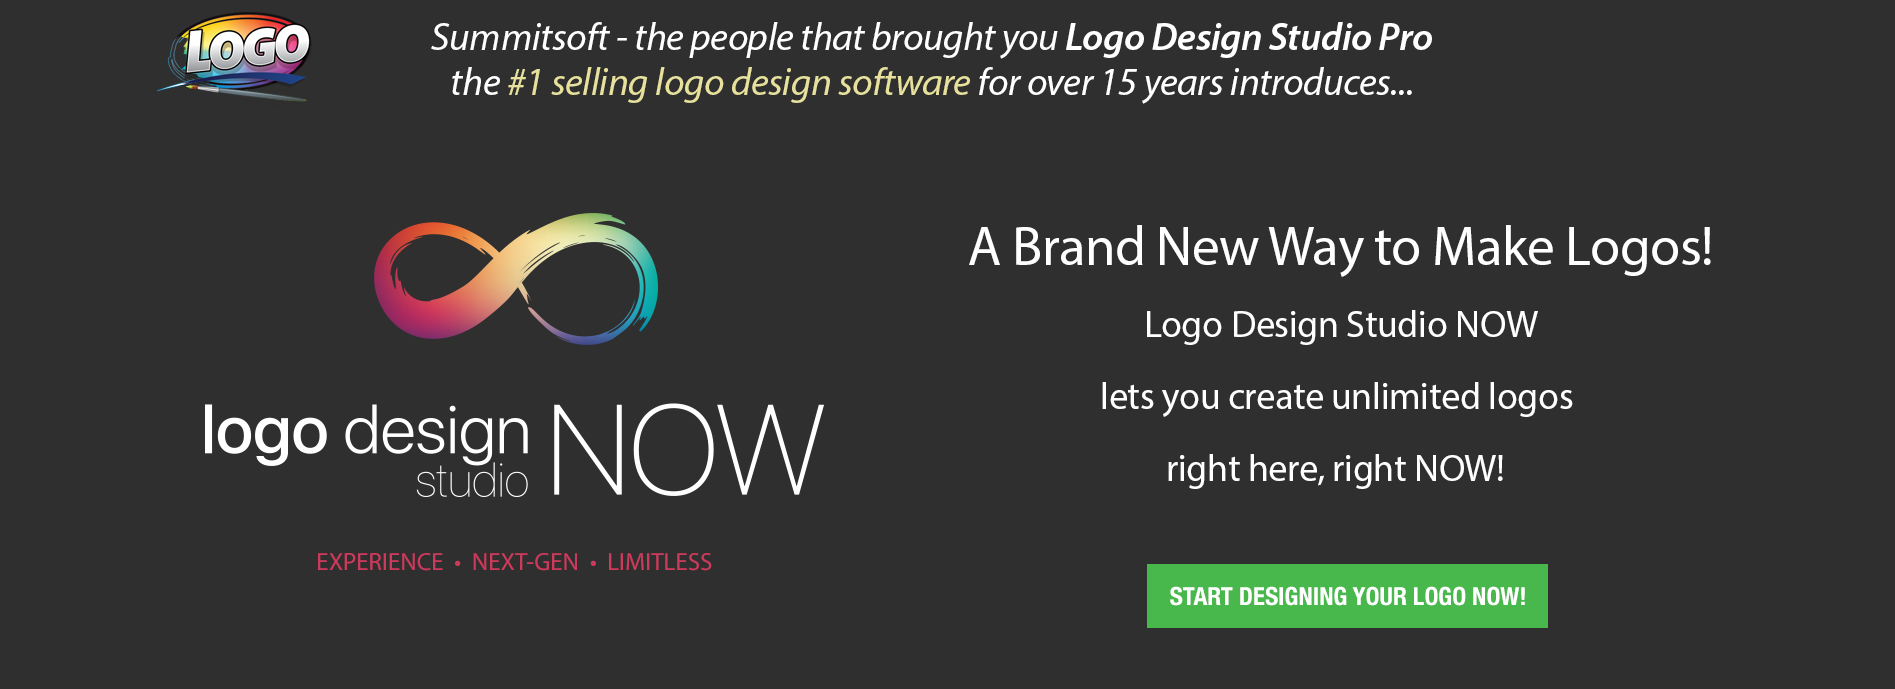 Logo Design Studio Now - The power to make any logo instantly!